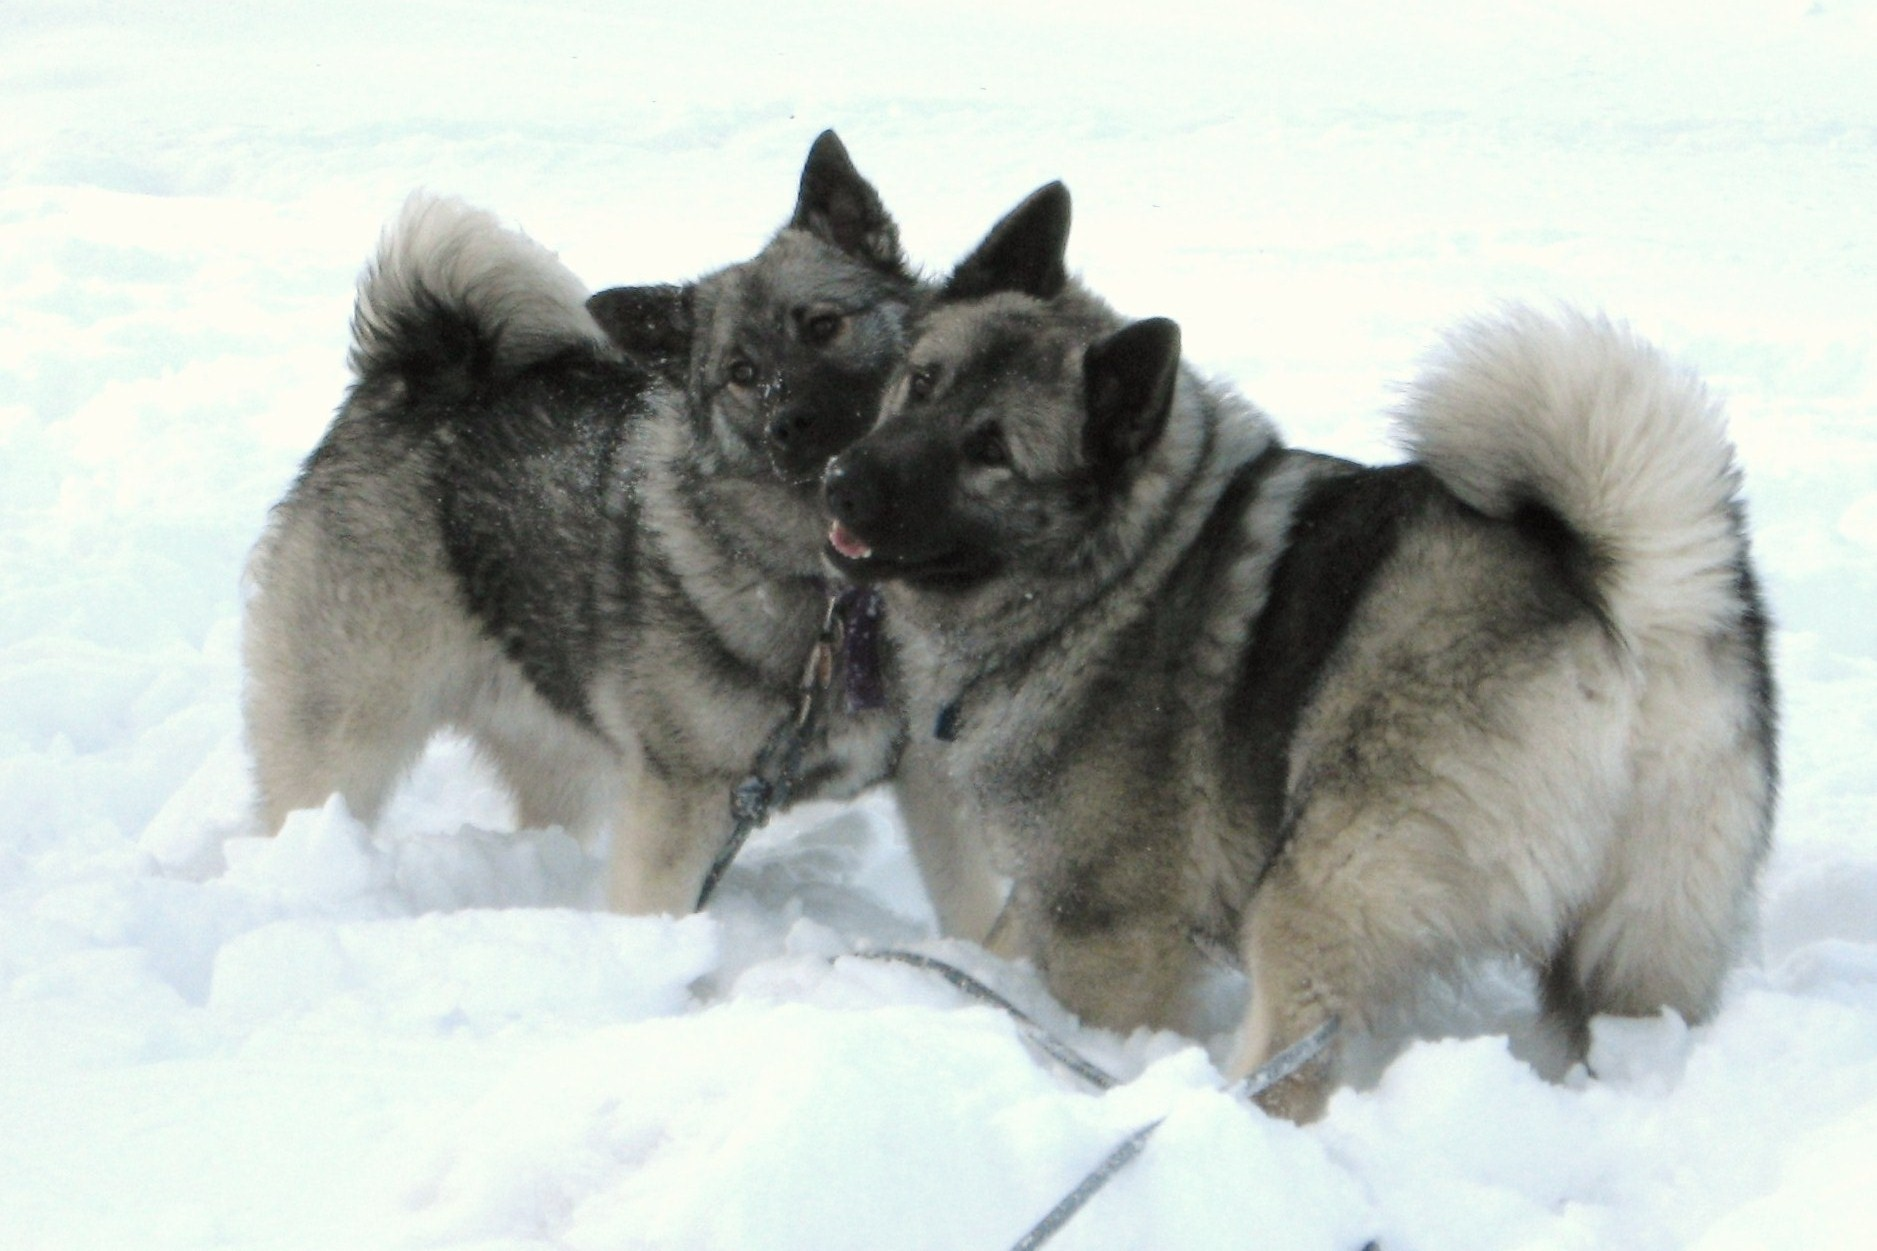 Winter Norwegian Elkhound dogs wallpaper